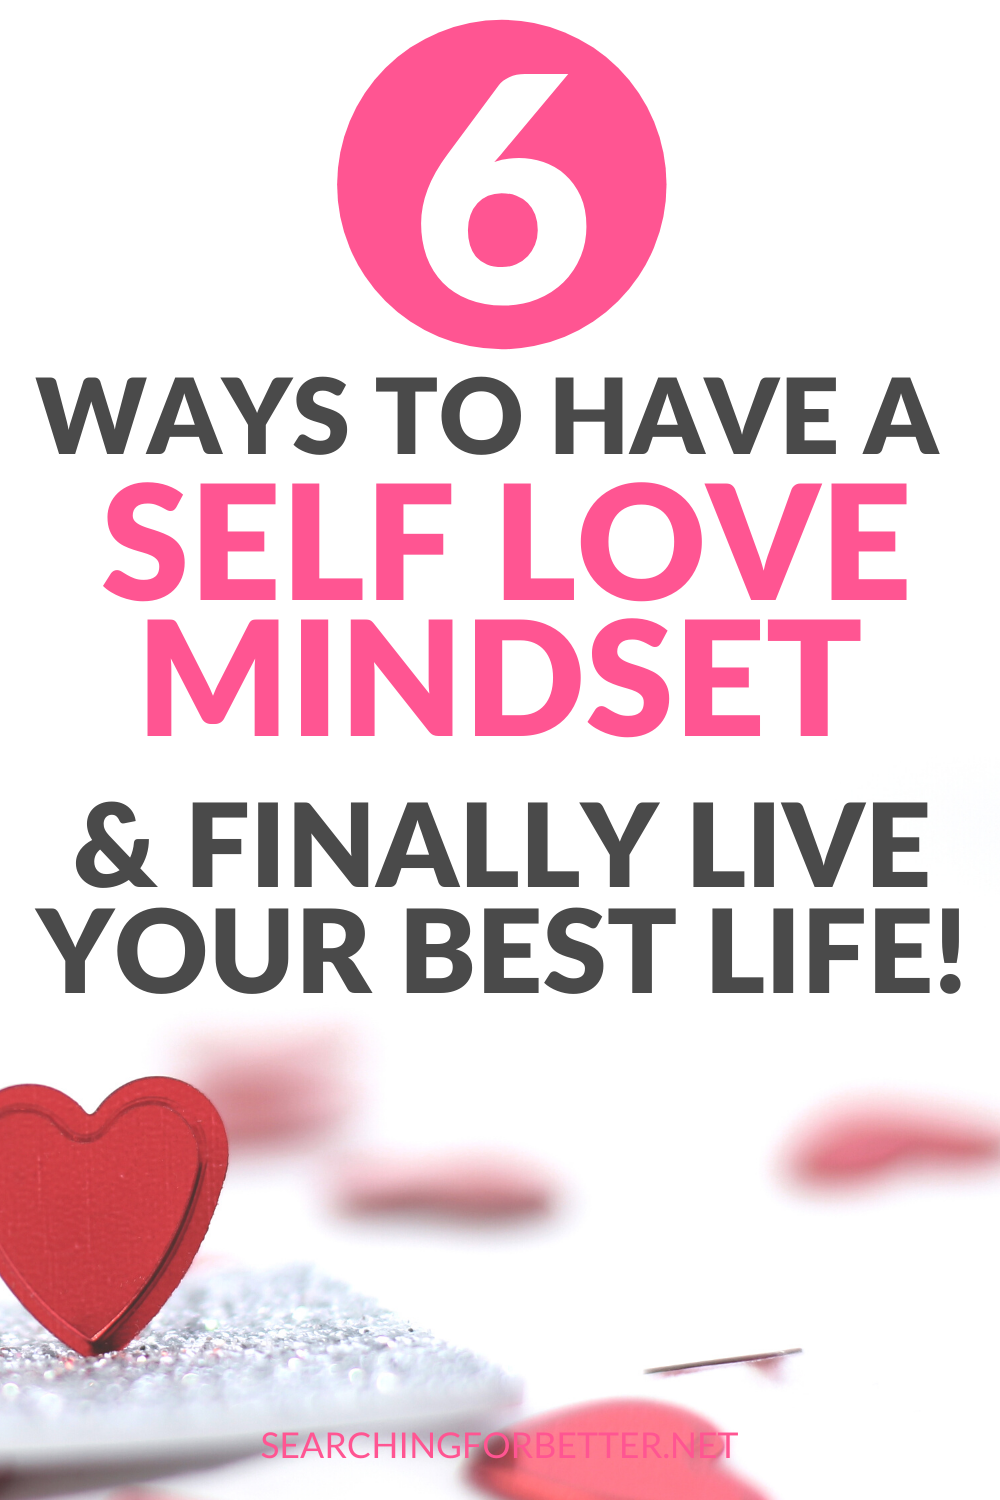 How To Love Yourself More. Learn how to practice the best self love mindset with these 6 simple tips. These ideas are about how to build your best life and how to make a life you love by practicing how to self love yourself. There ideas and thoughts that have helped me to change my life!